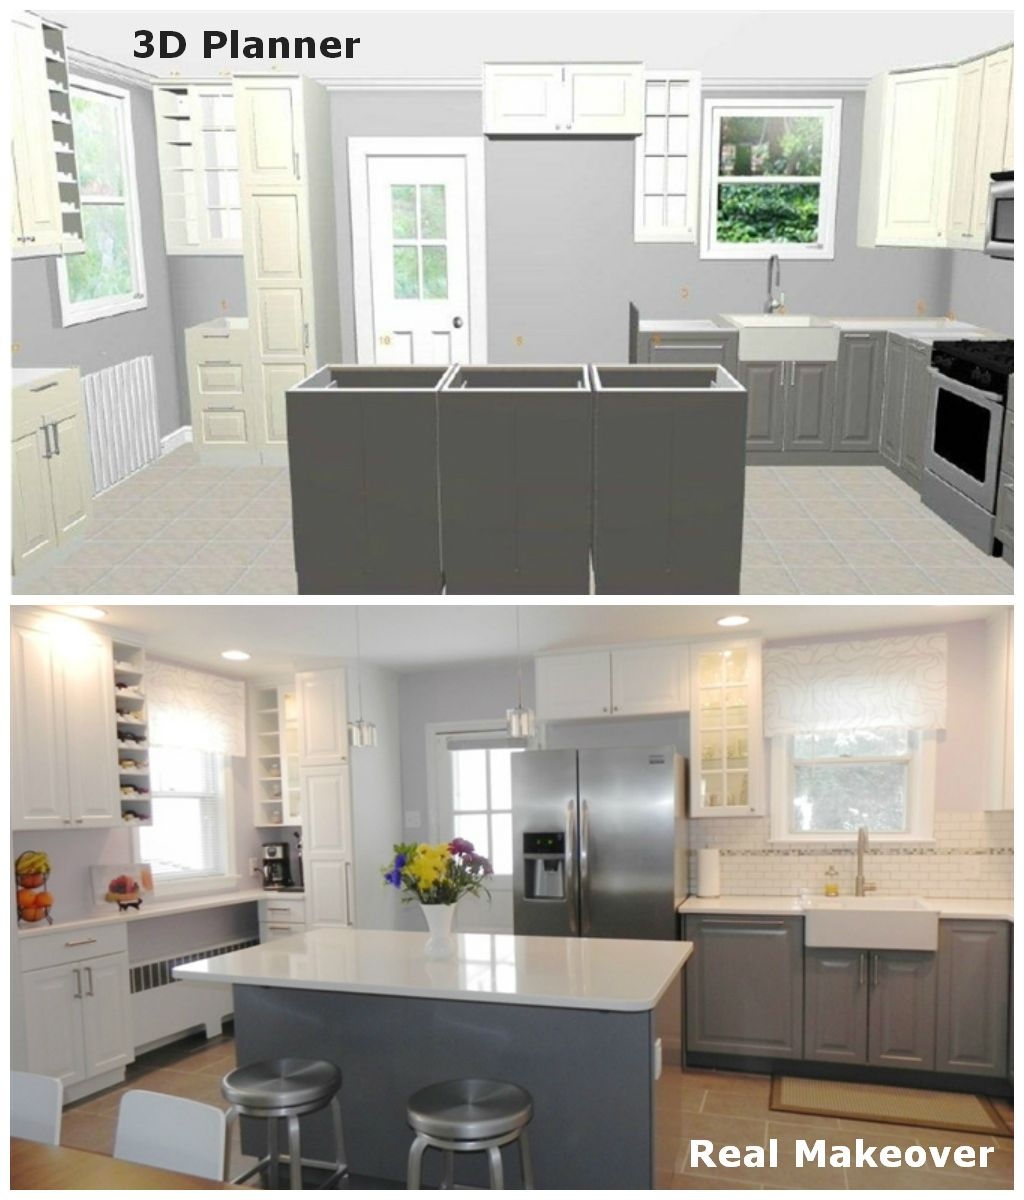 This IKEA blogger created her dream kitchen in IKEA 3D